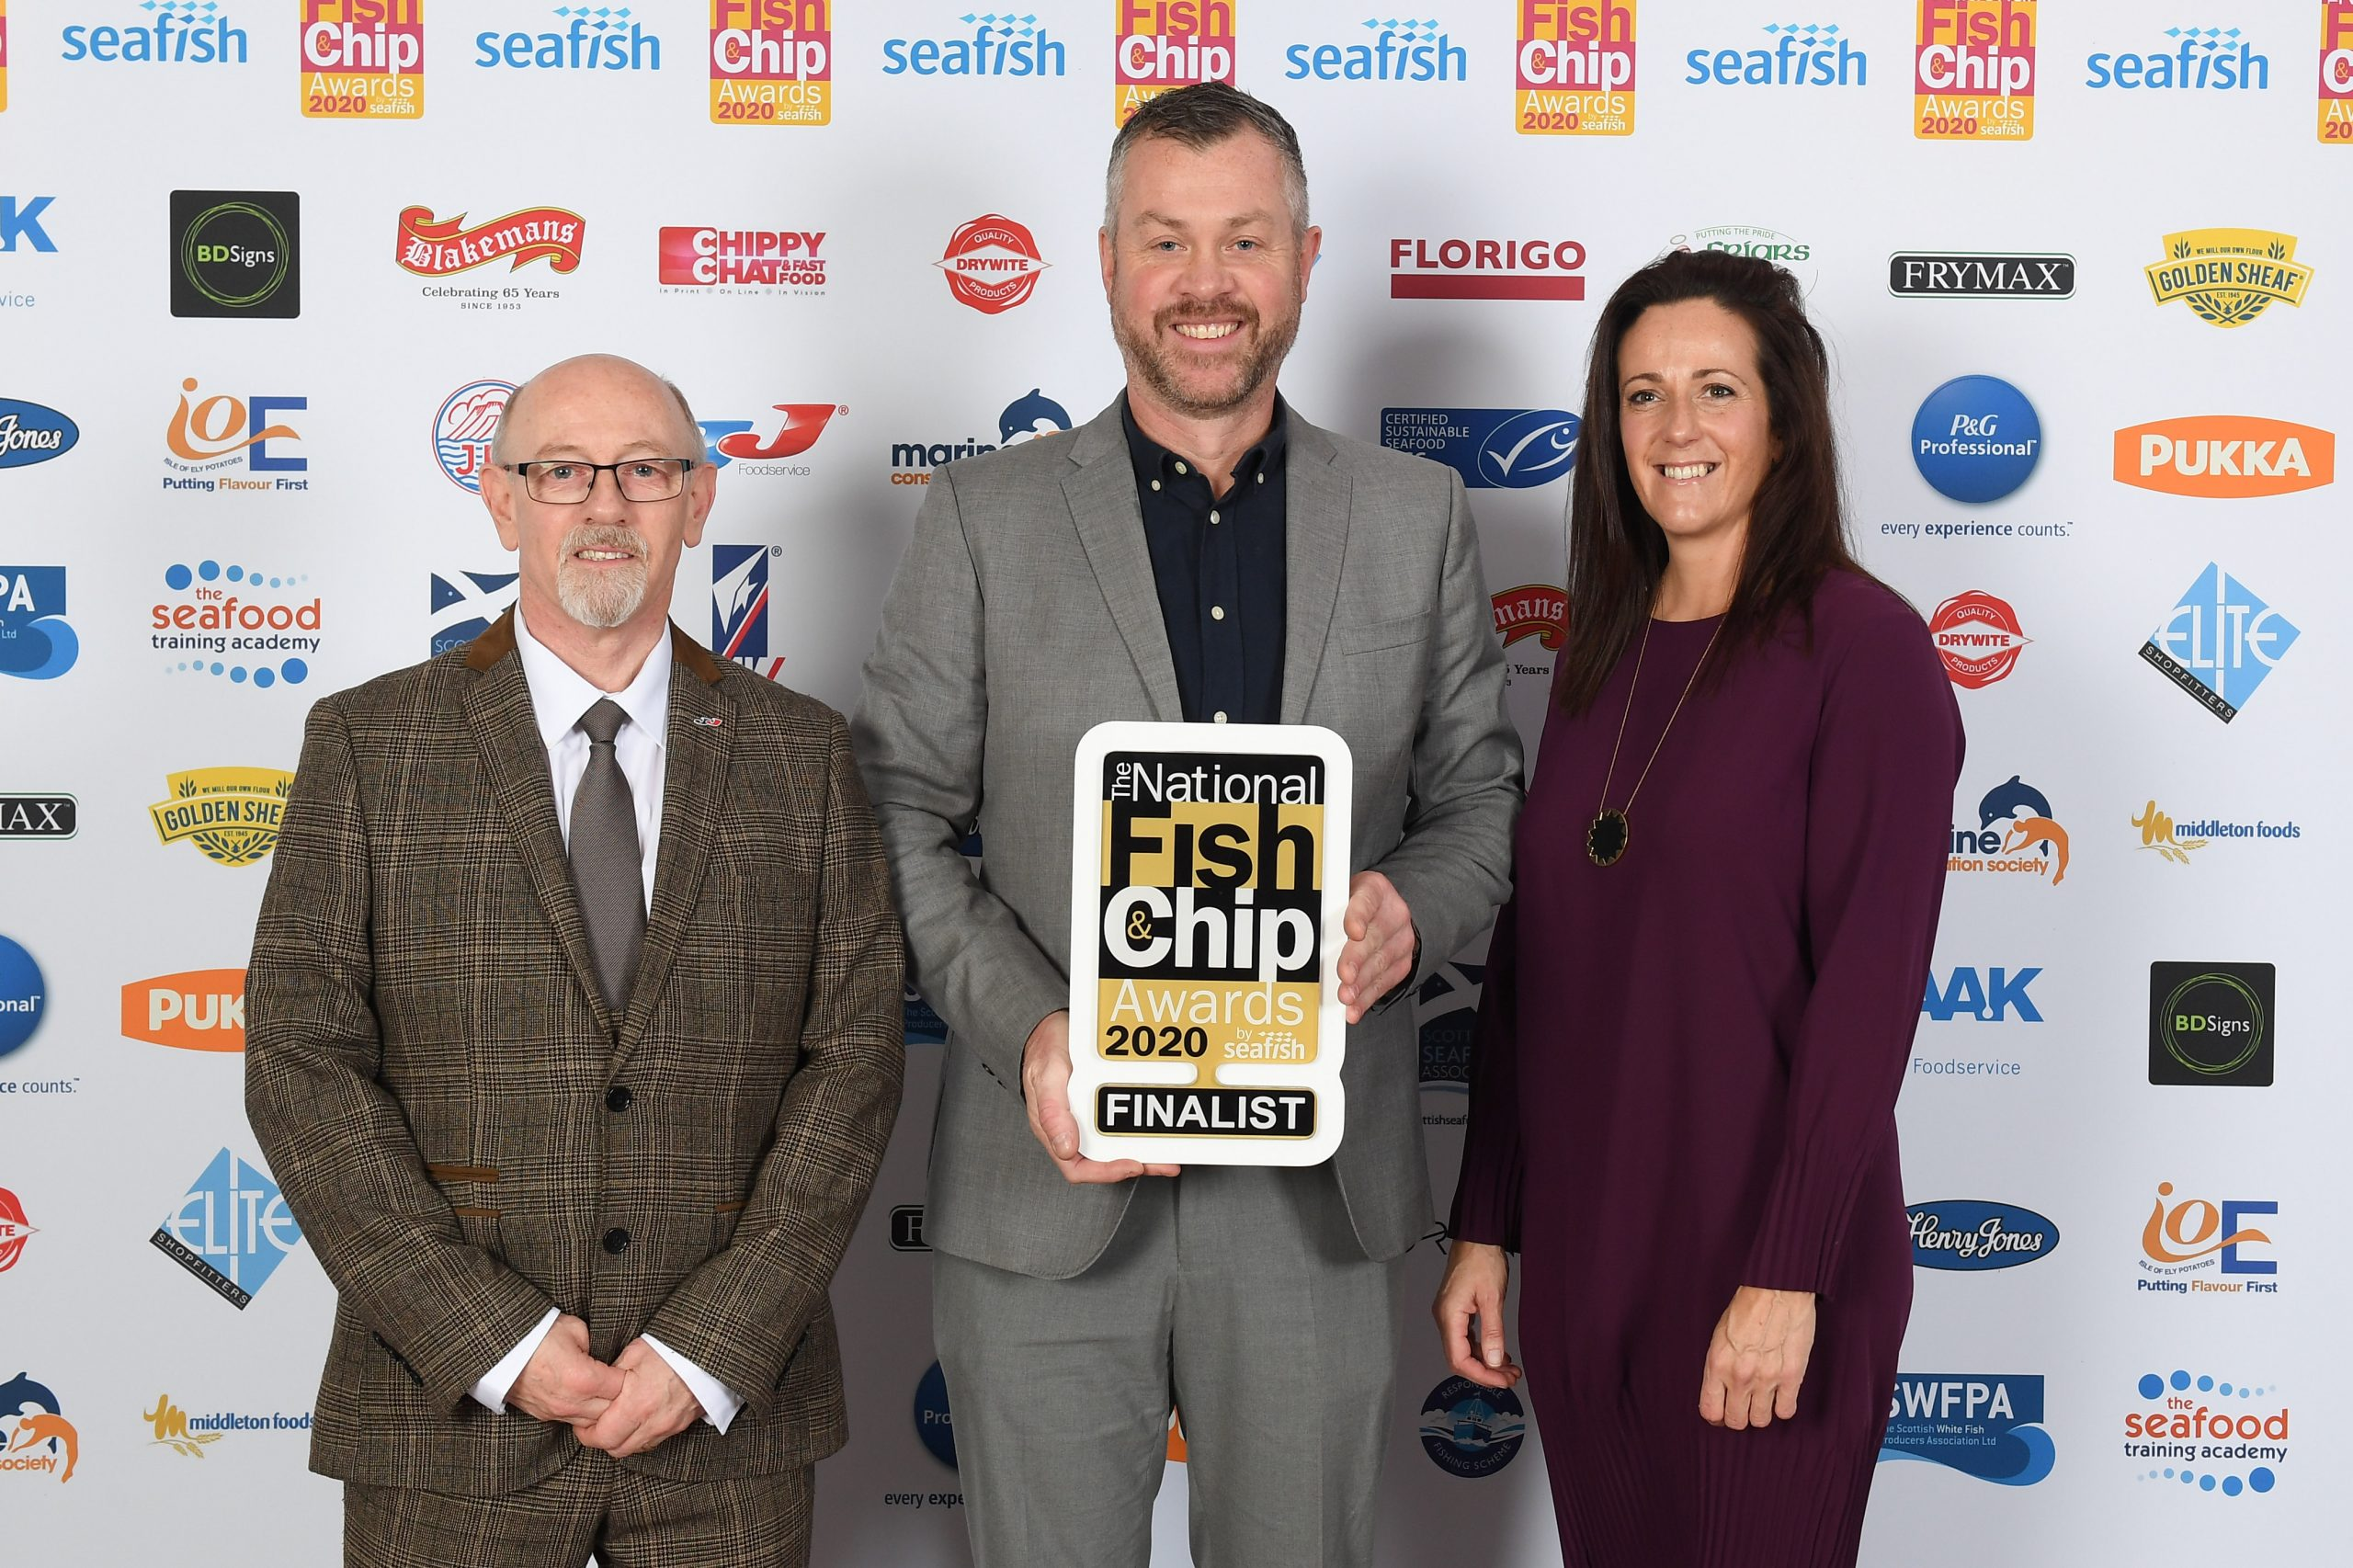 The English Indian, national fish chip awards